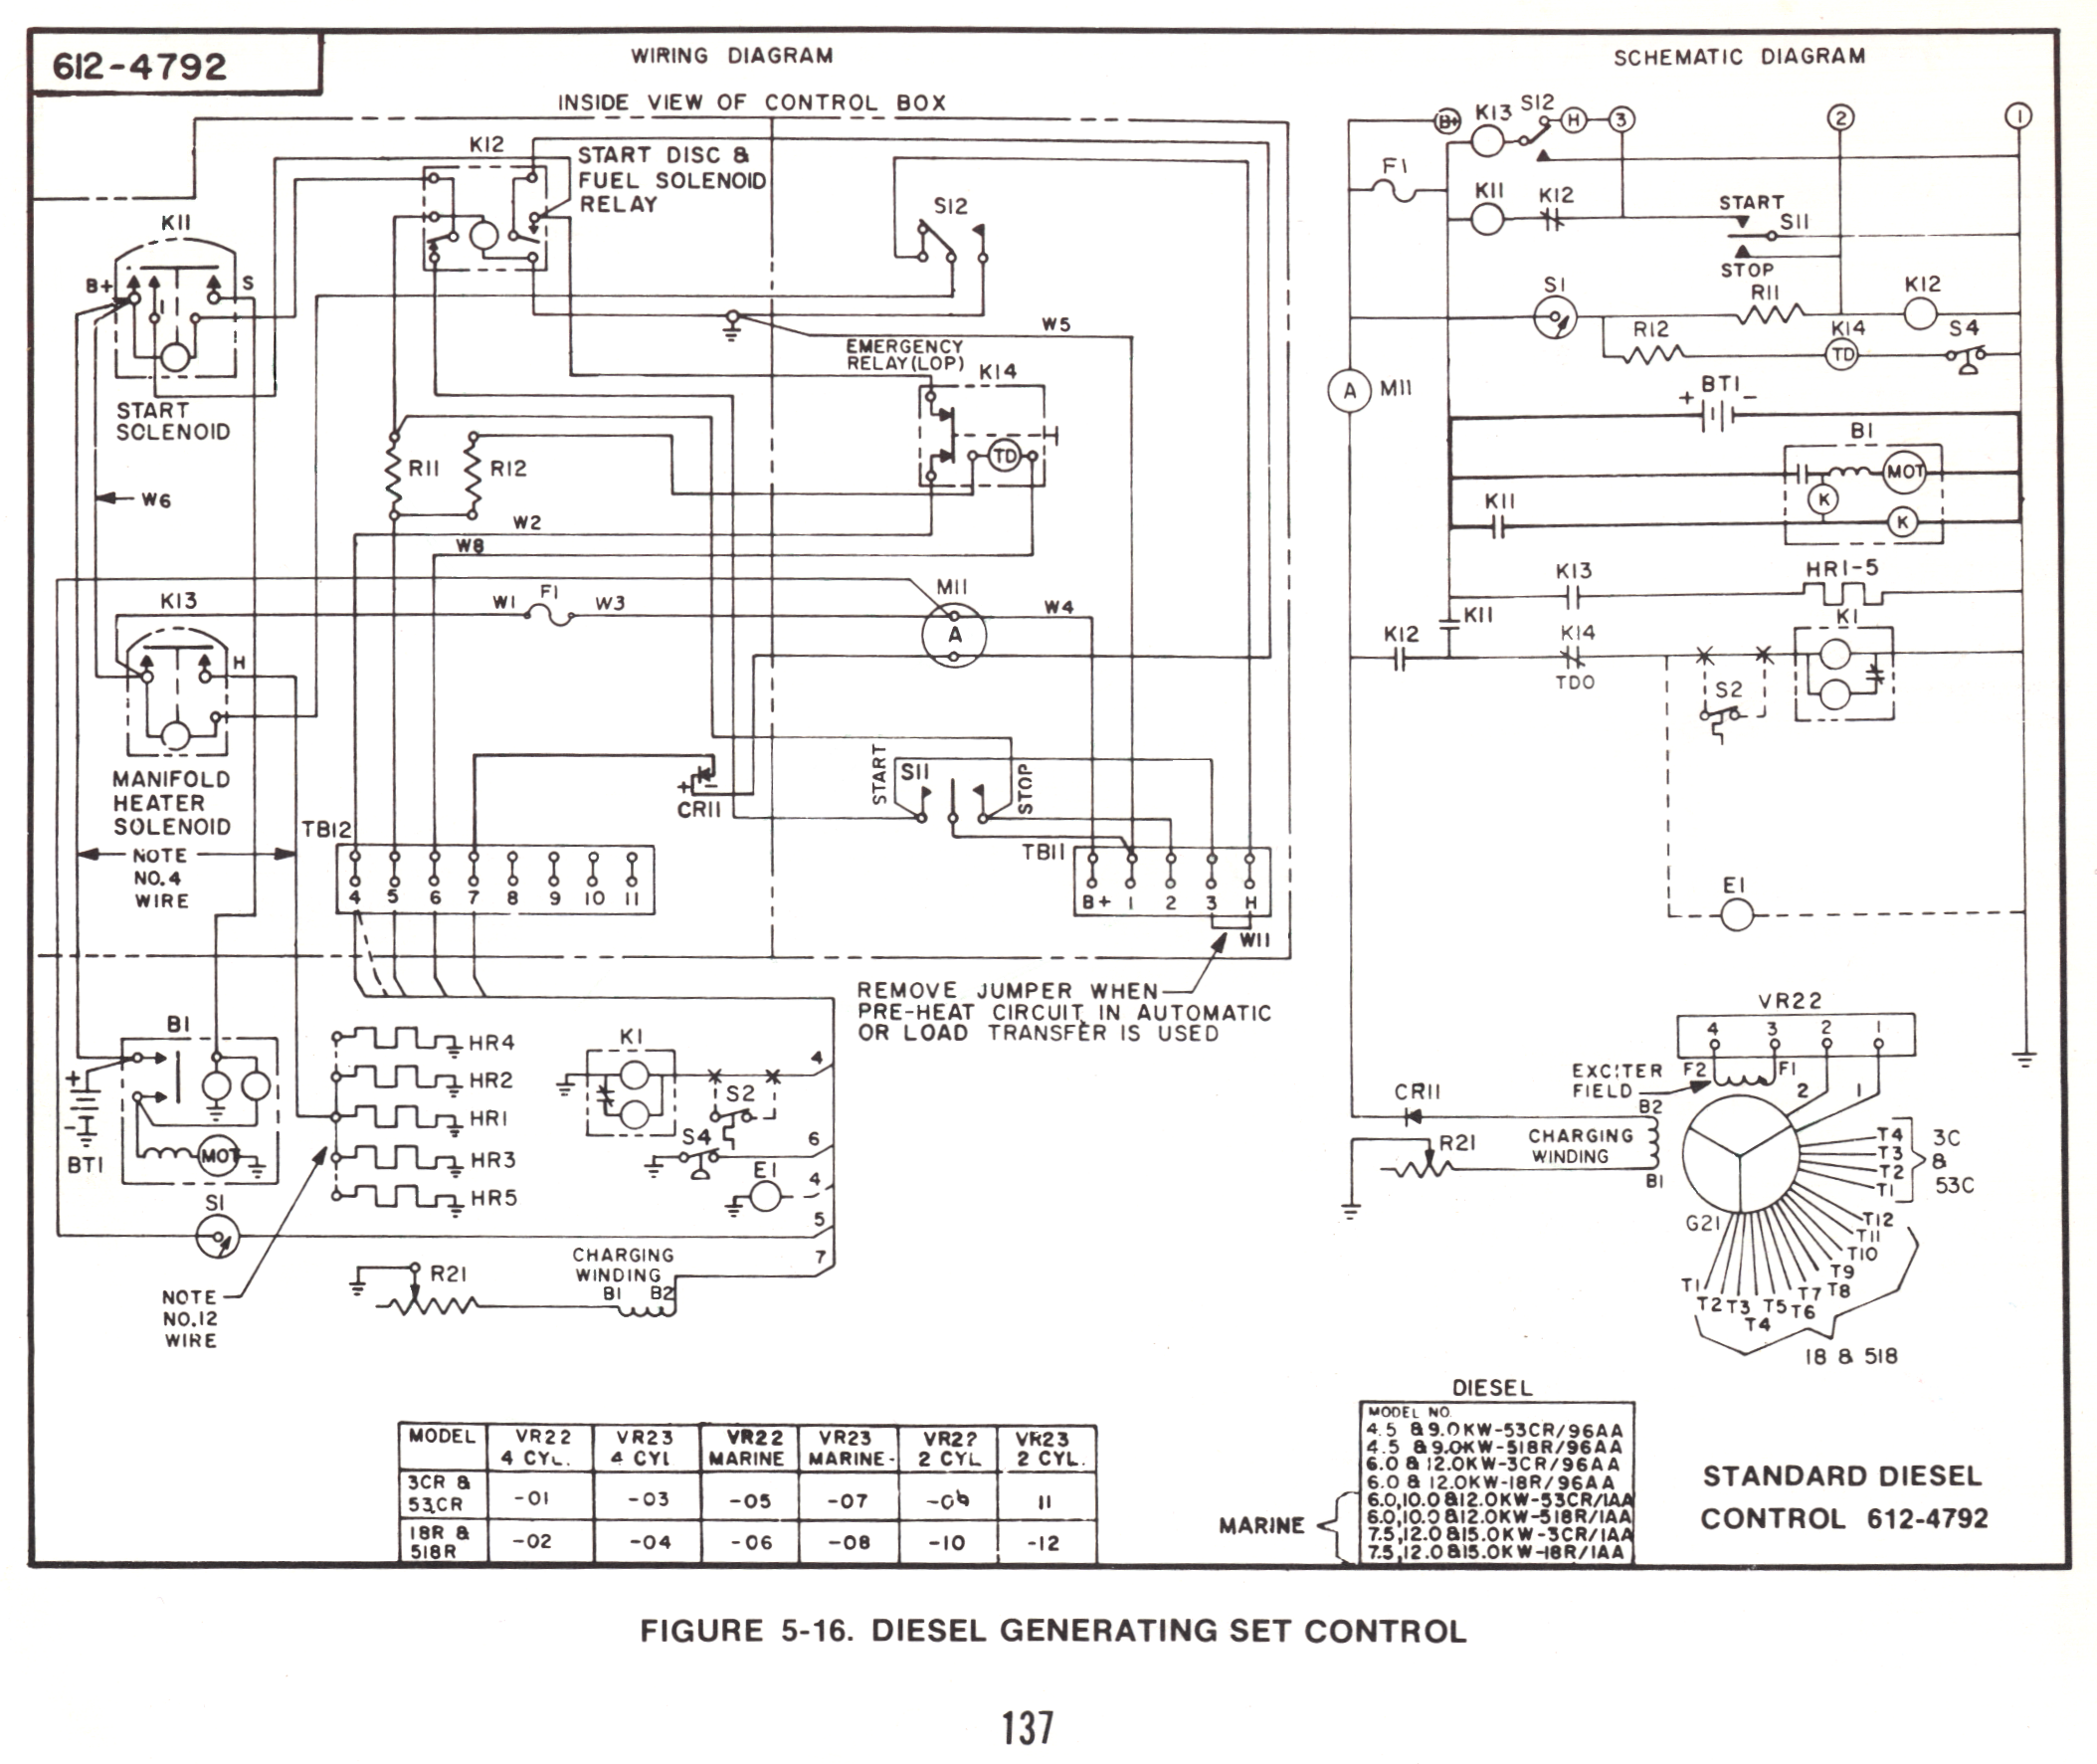 Onan_Diesel_Controls_612 4792_b onan wiring diagram onan wiring diagram 611 1127 \u2022 wiring diagrams champion generator wiring diagram at gsmportal.co